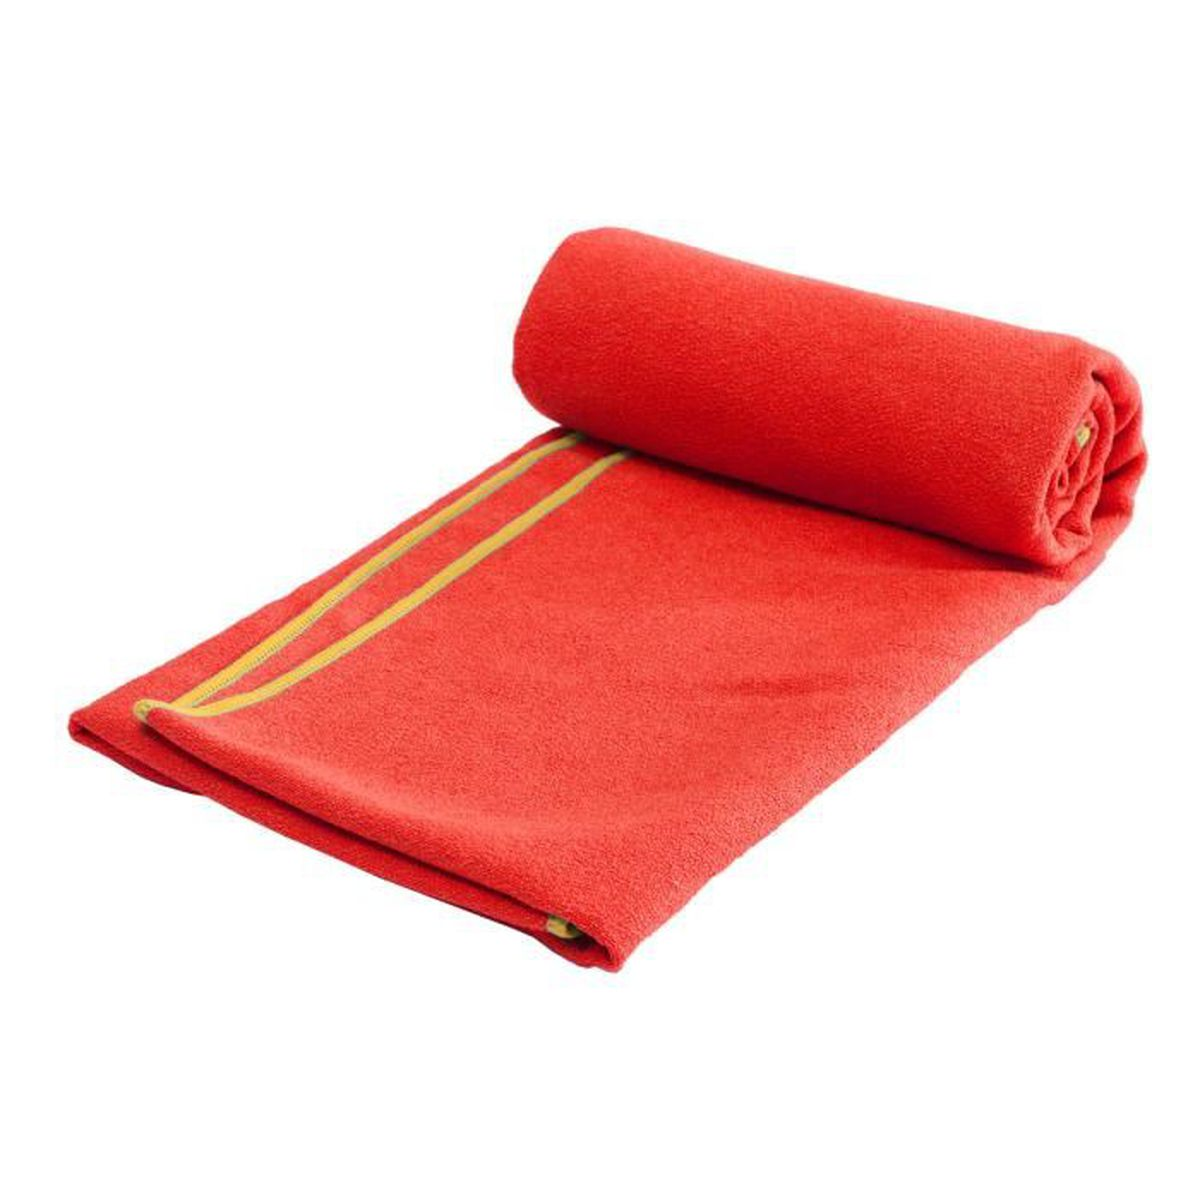 yoga serviettes microfibre de fitness tapis de sport rouge prix pas cher cdiscount. Black Bedroom Furniture Sets. Home Design Ideas